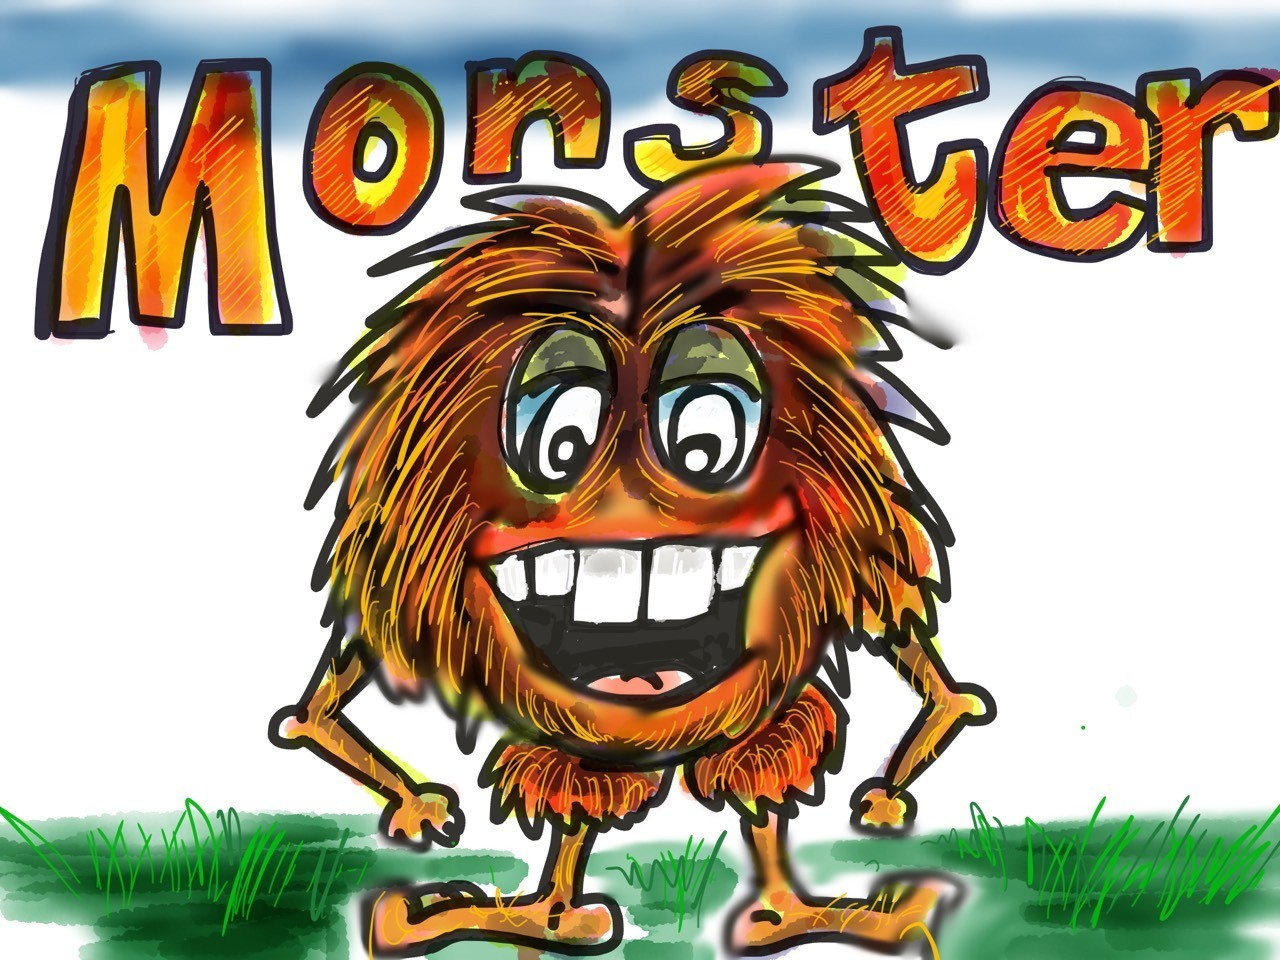 This is a monster drawing that we created using the paper 53 app.